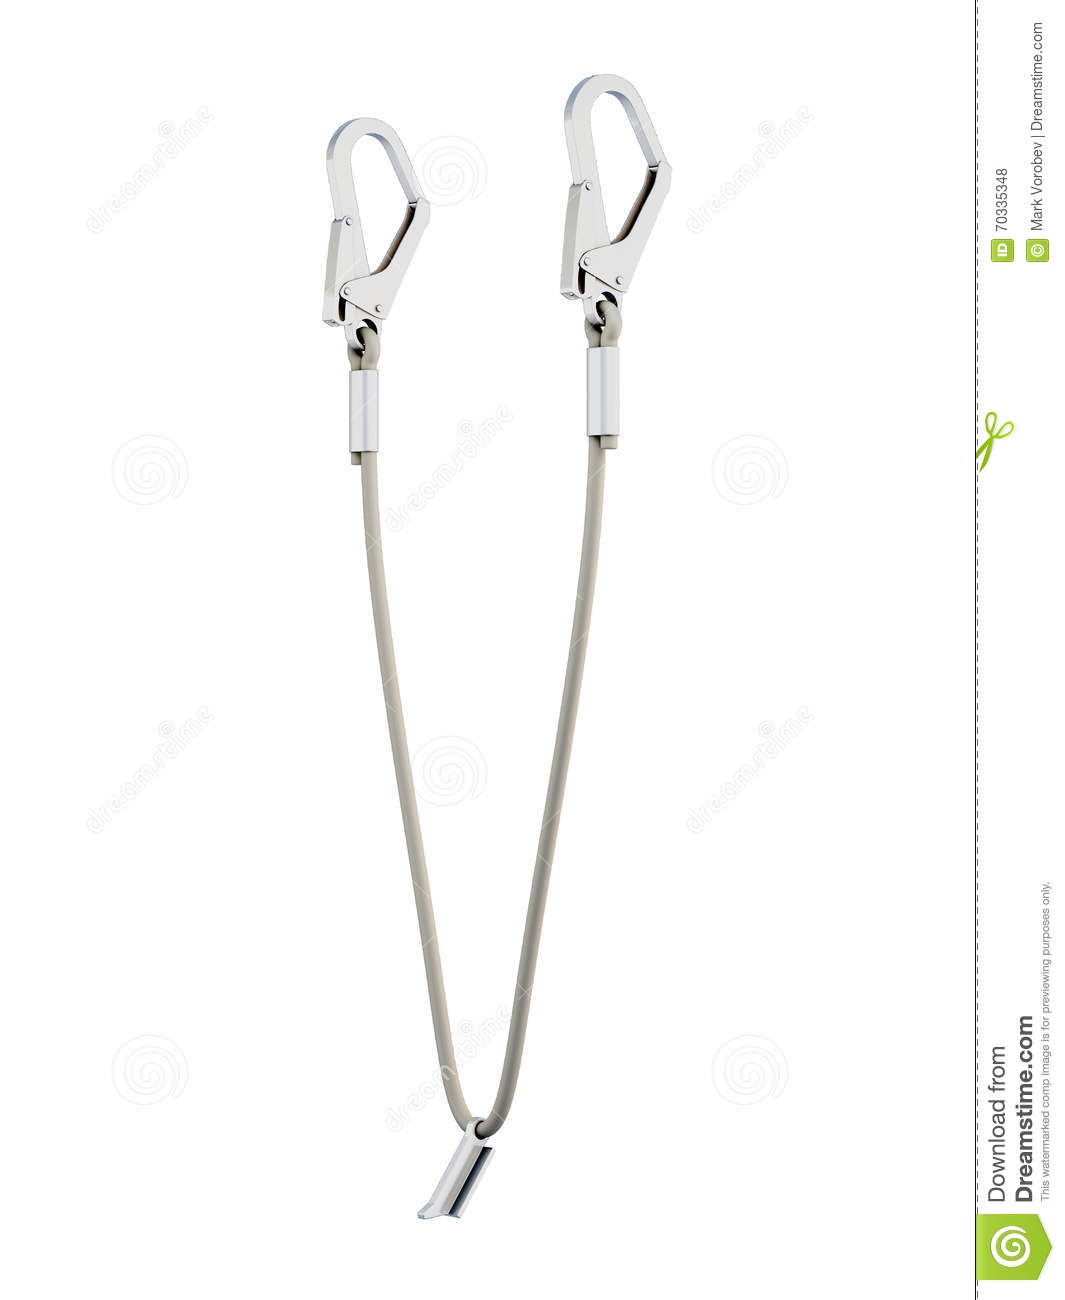 Harness For Safety Rock Climbing Royalty-Free Stock